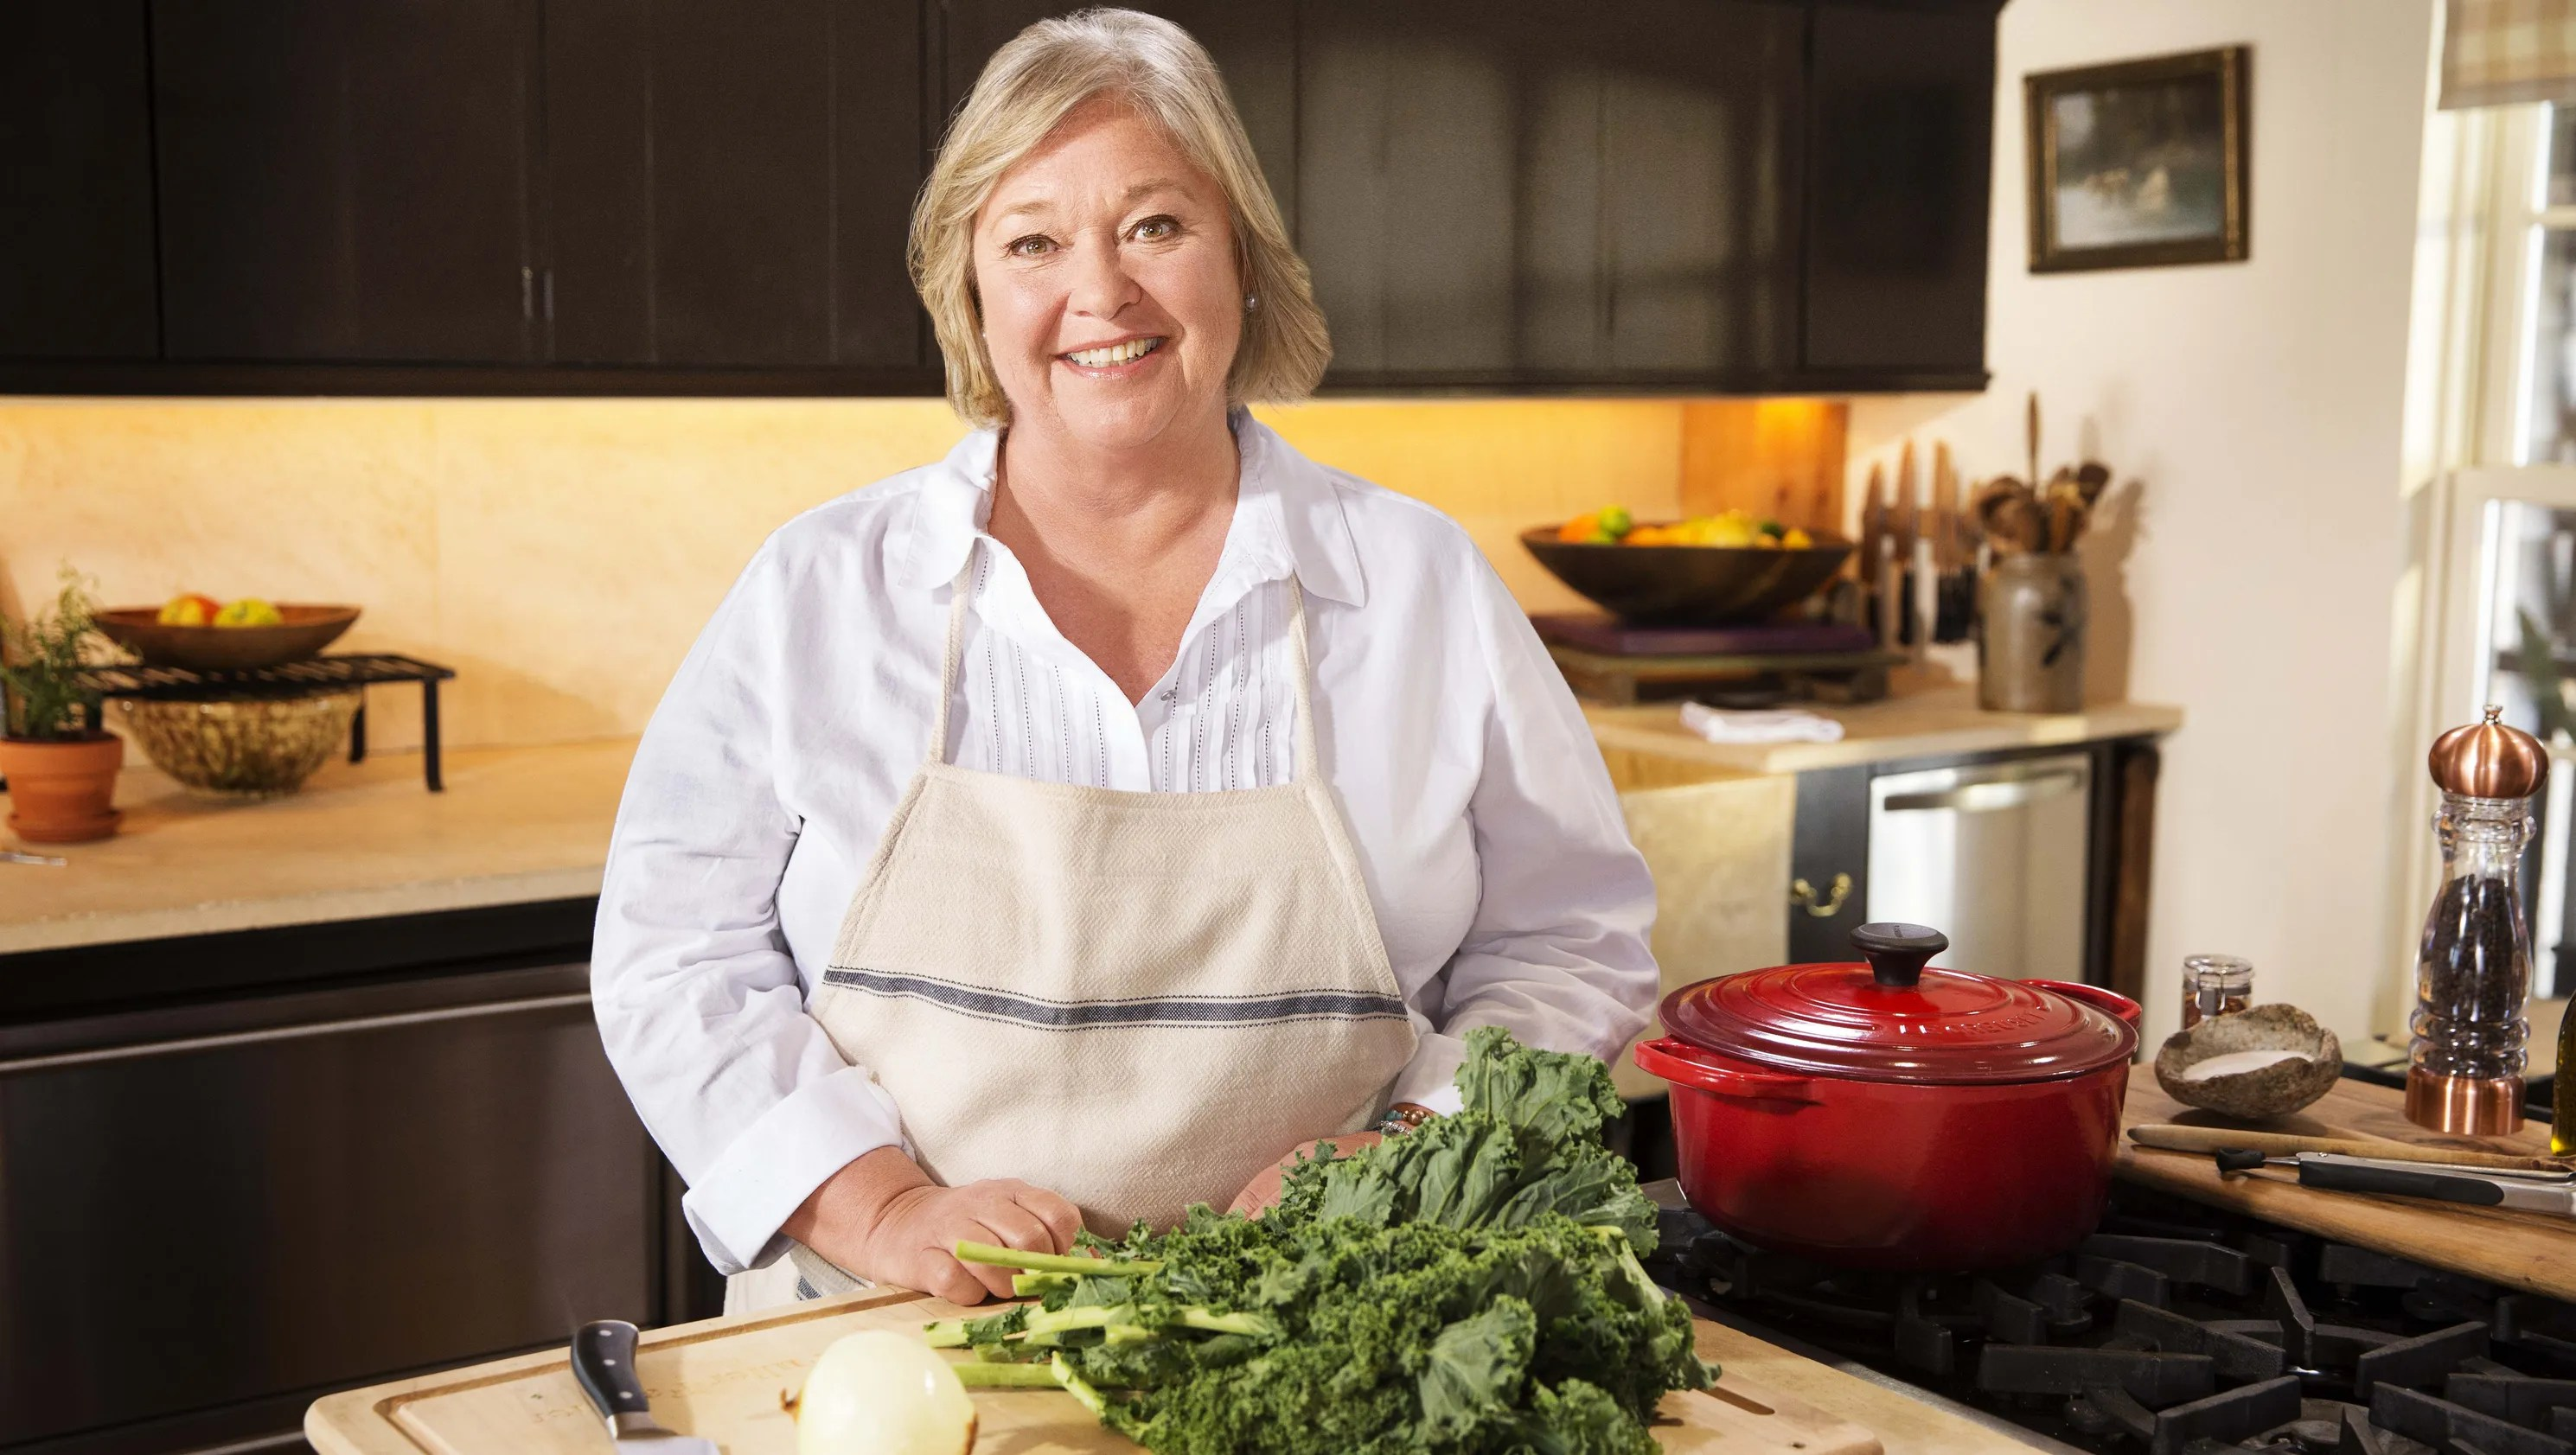 Thanksgiving 911 Food Network Host Tackles Top Cooking